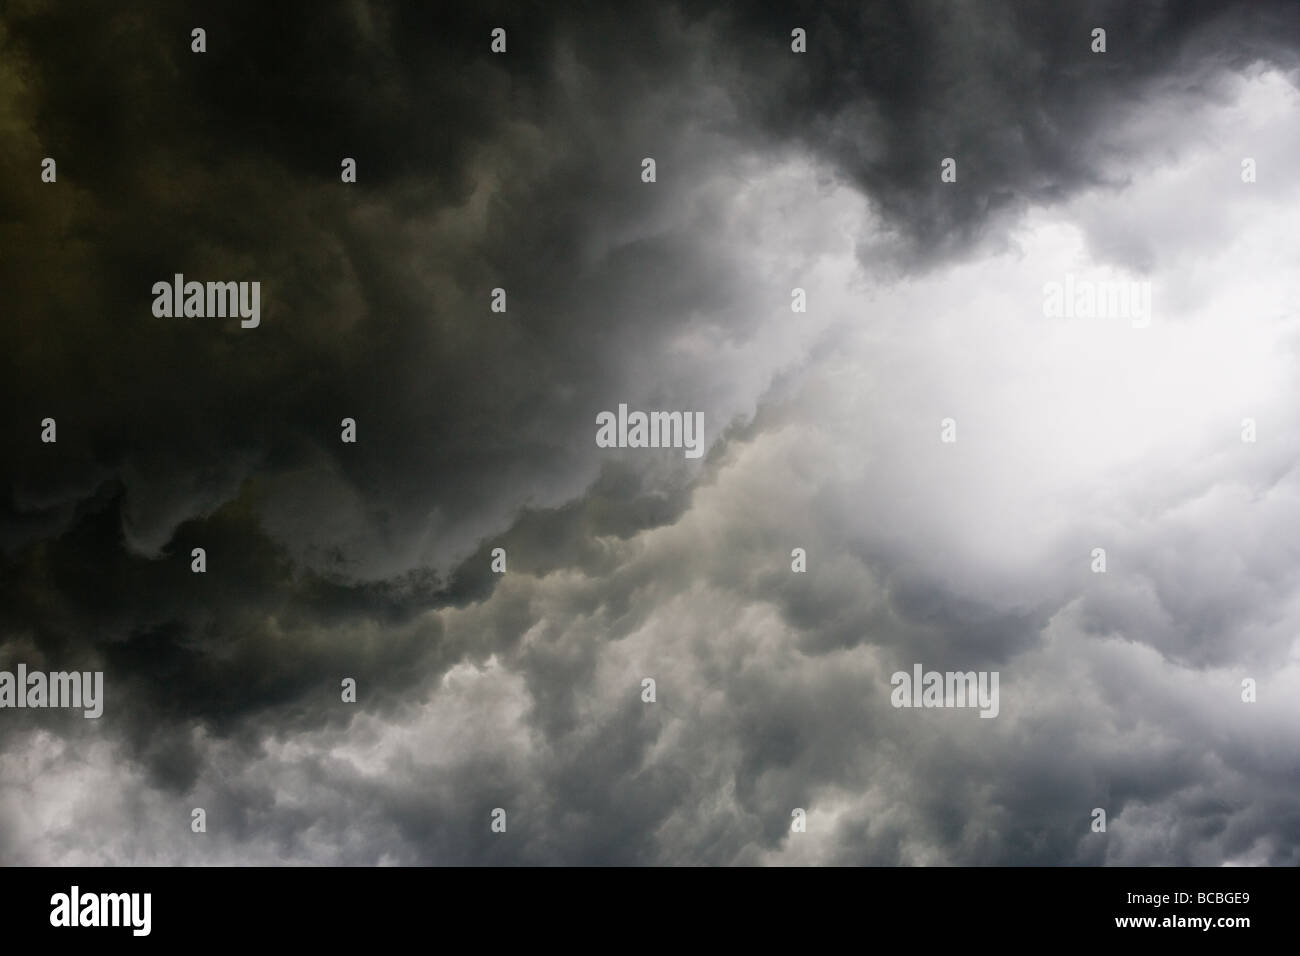 Dramatic moody dark storm clouds - Stock Image